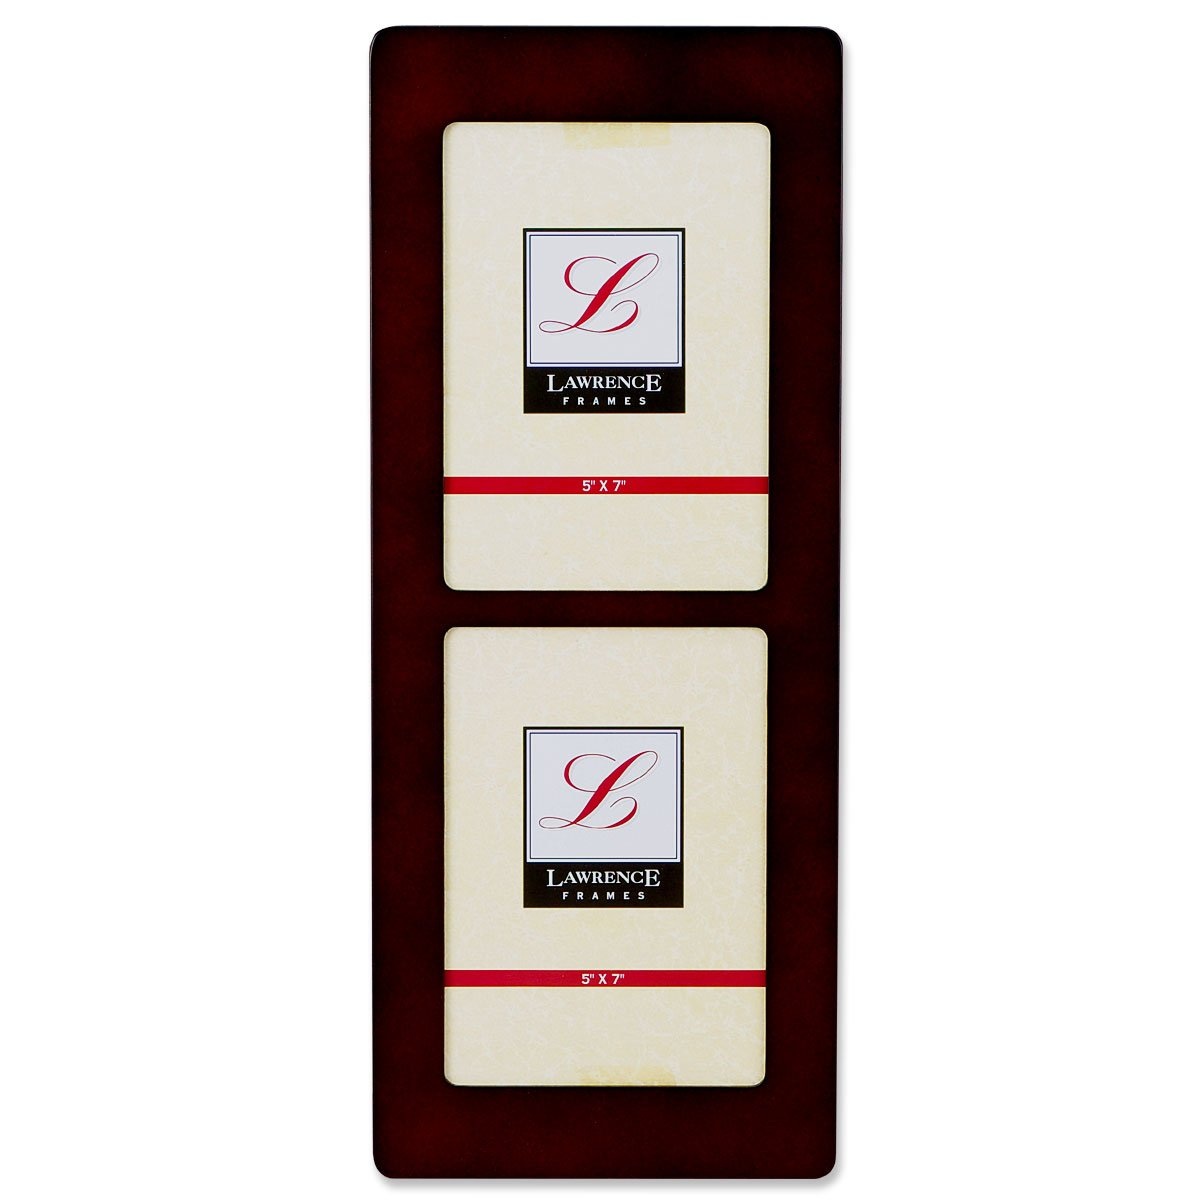 Lawrence Frames Walnut Wood 5x7 Multi Double Vertical Picture Frame 834157D